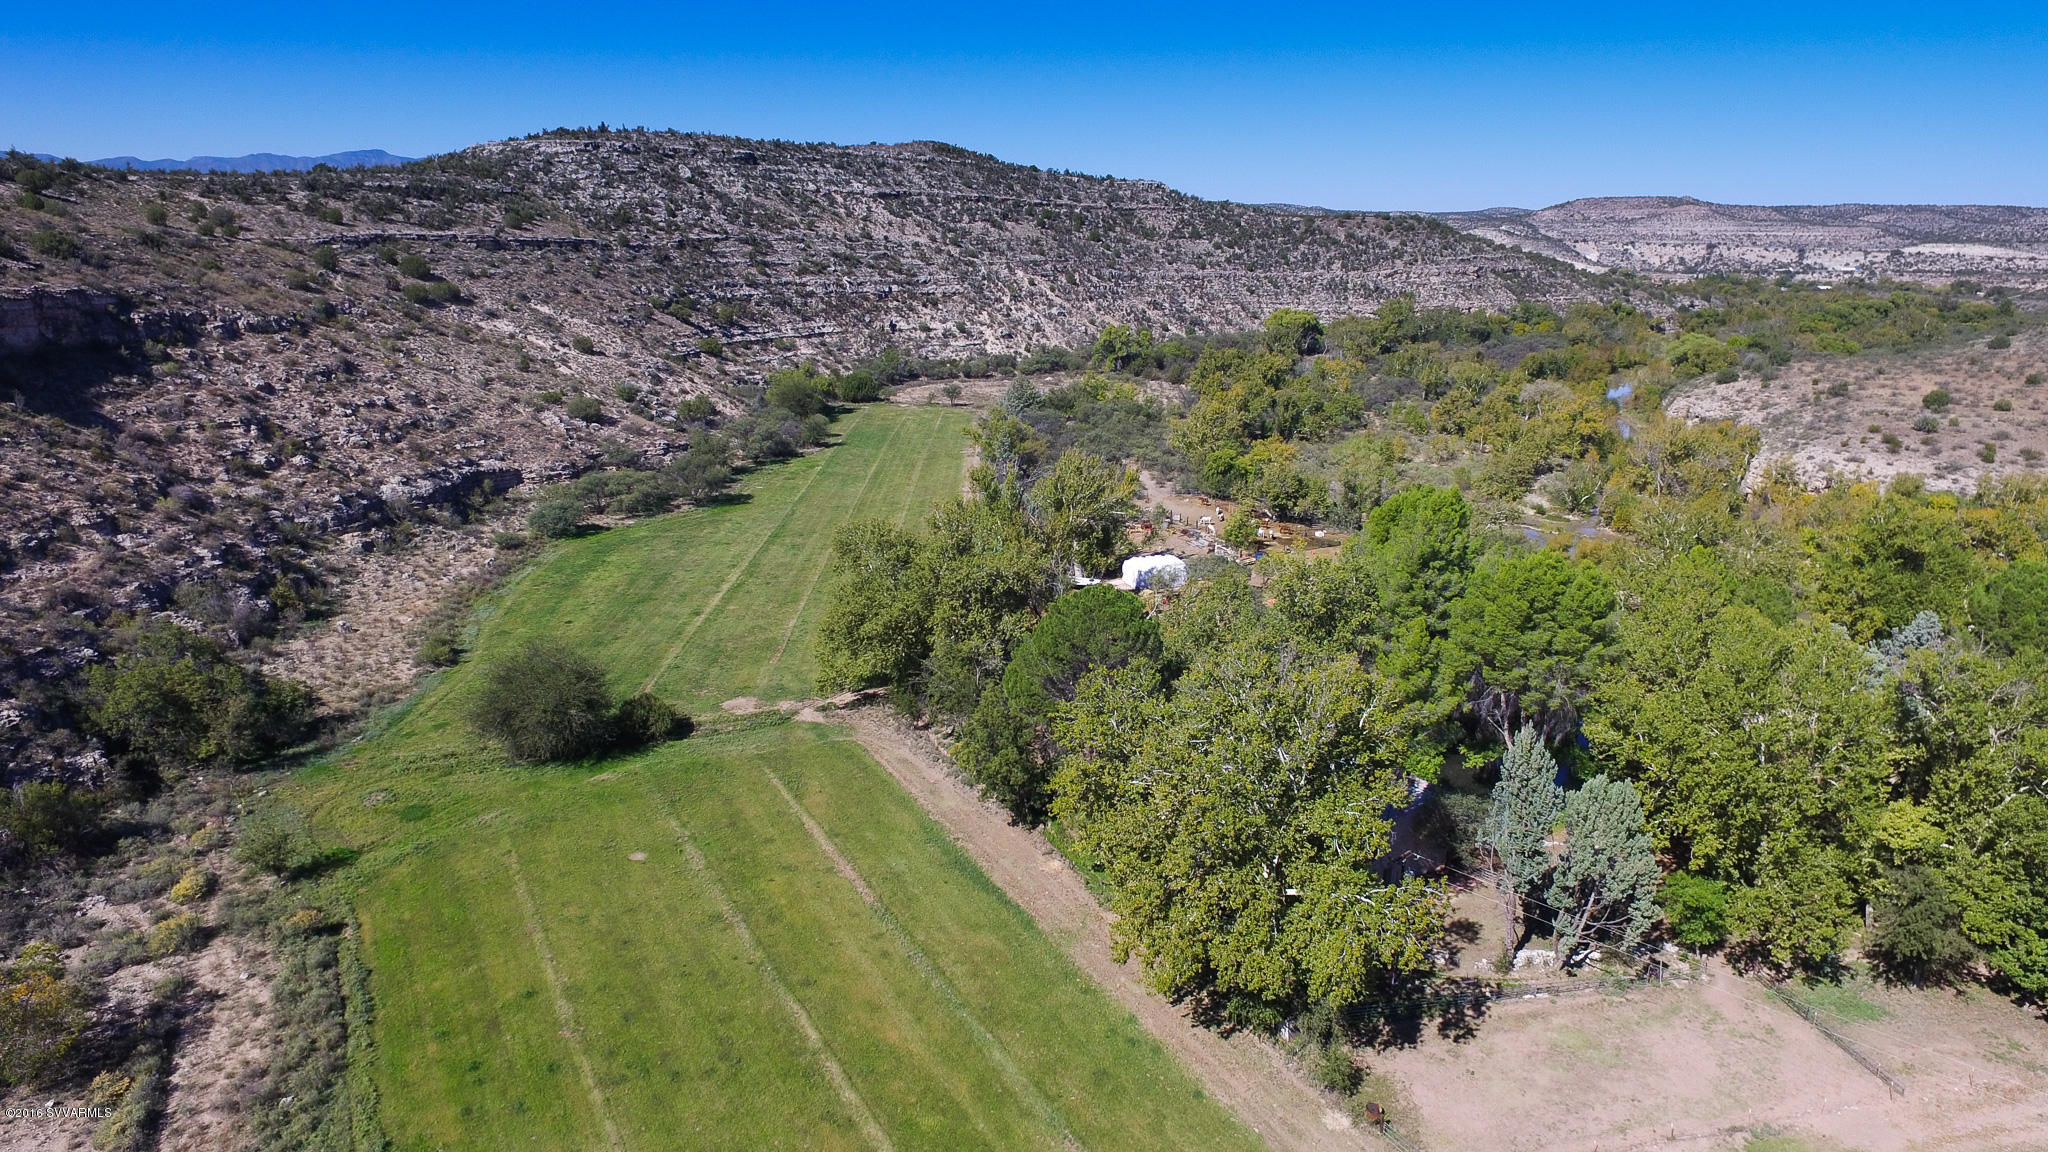 1875 E Dragonshead Rd - Dyck Ranch Rimrock, AZ 86335